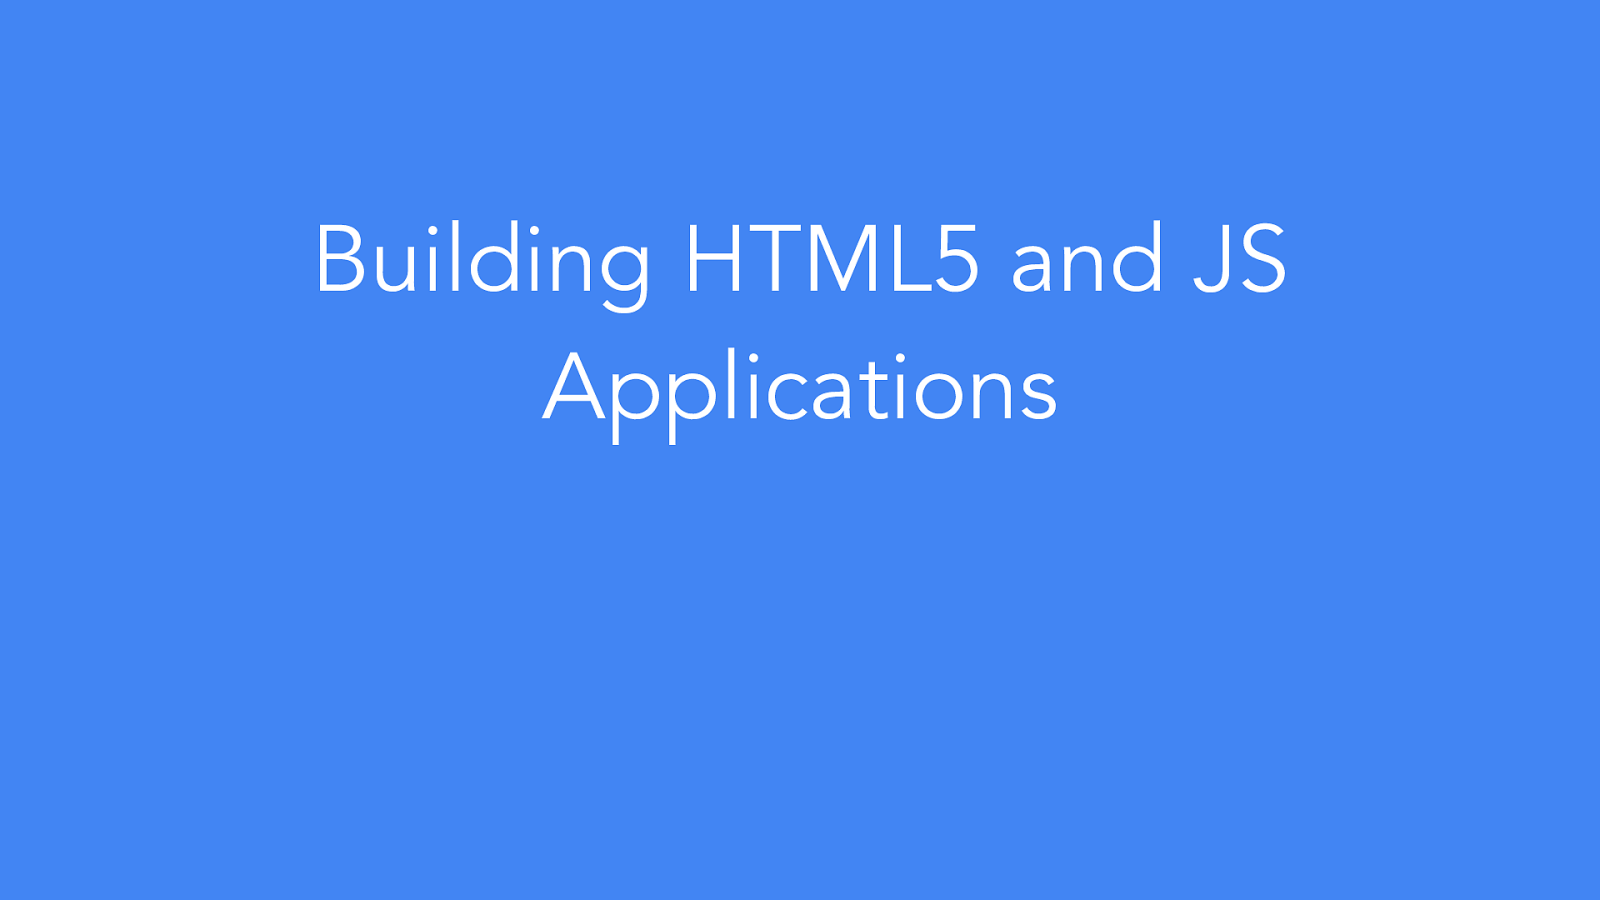 HTML5 Applications